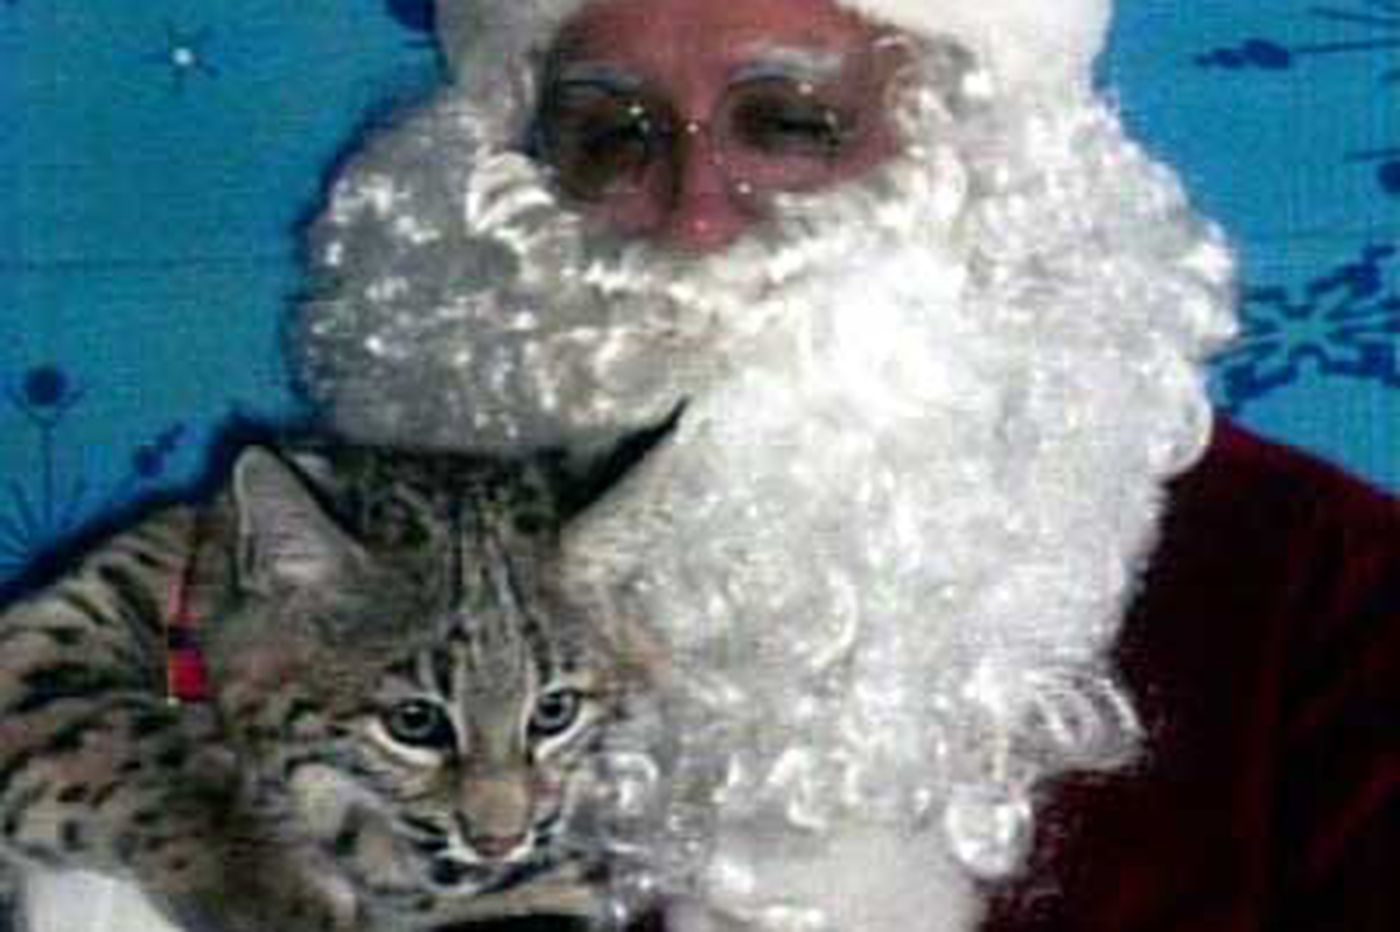 Ho-ho-whew: Bite came from domesticated kitty